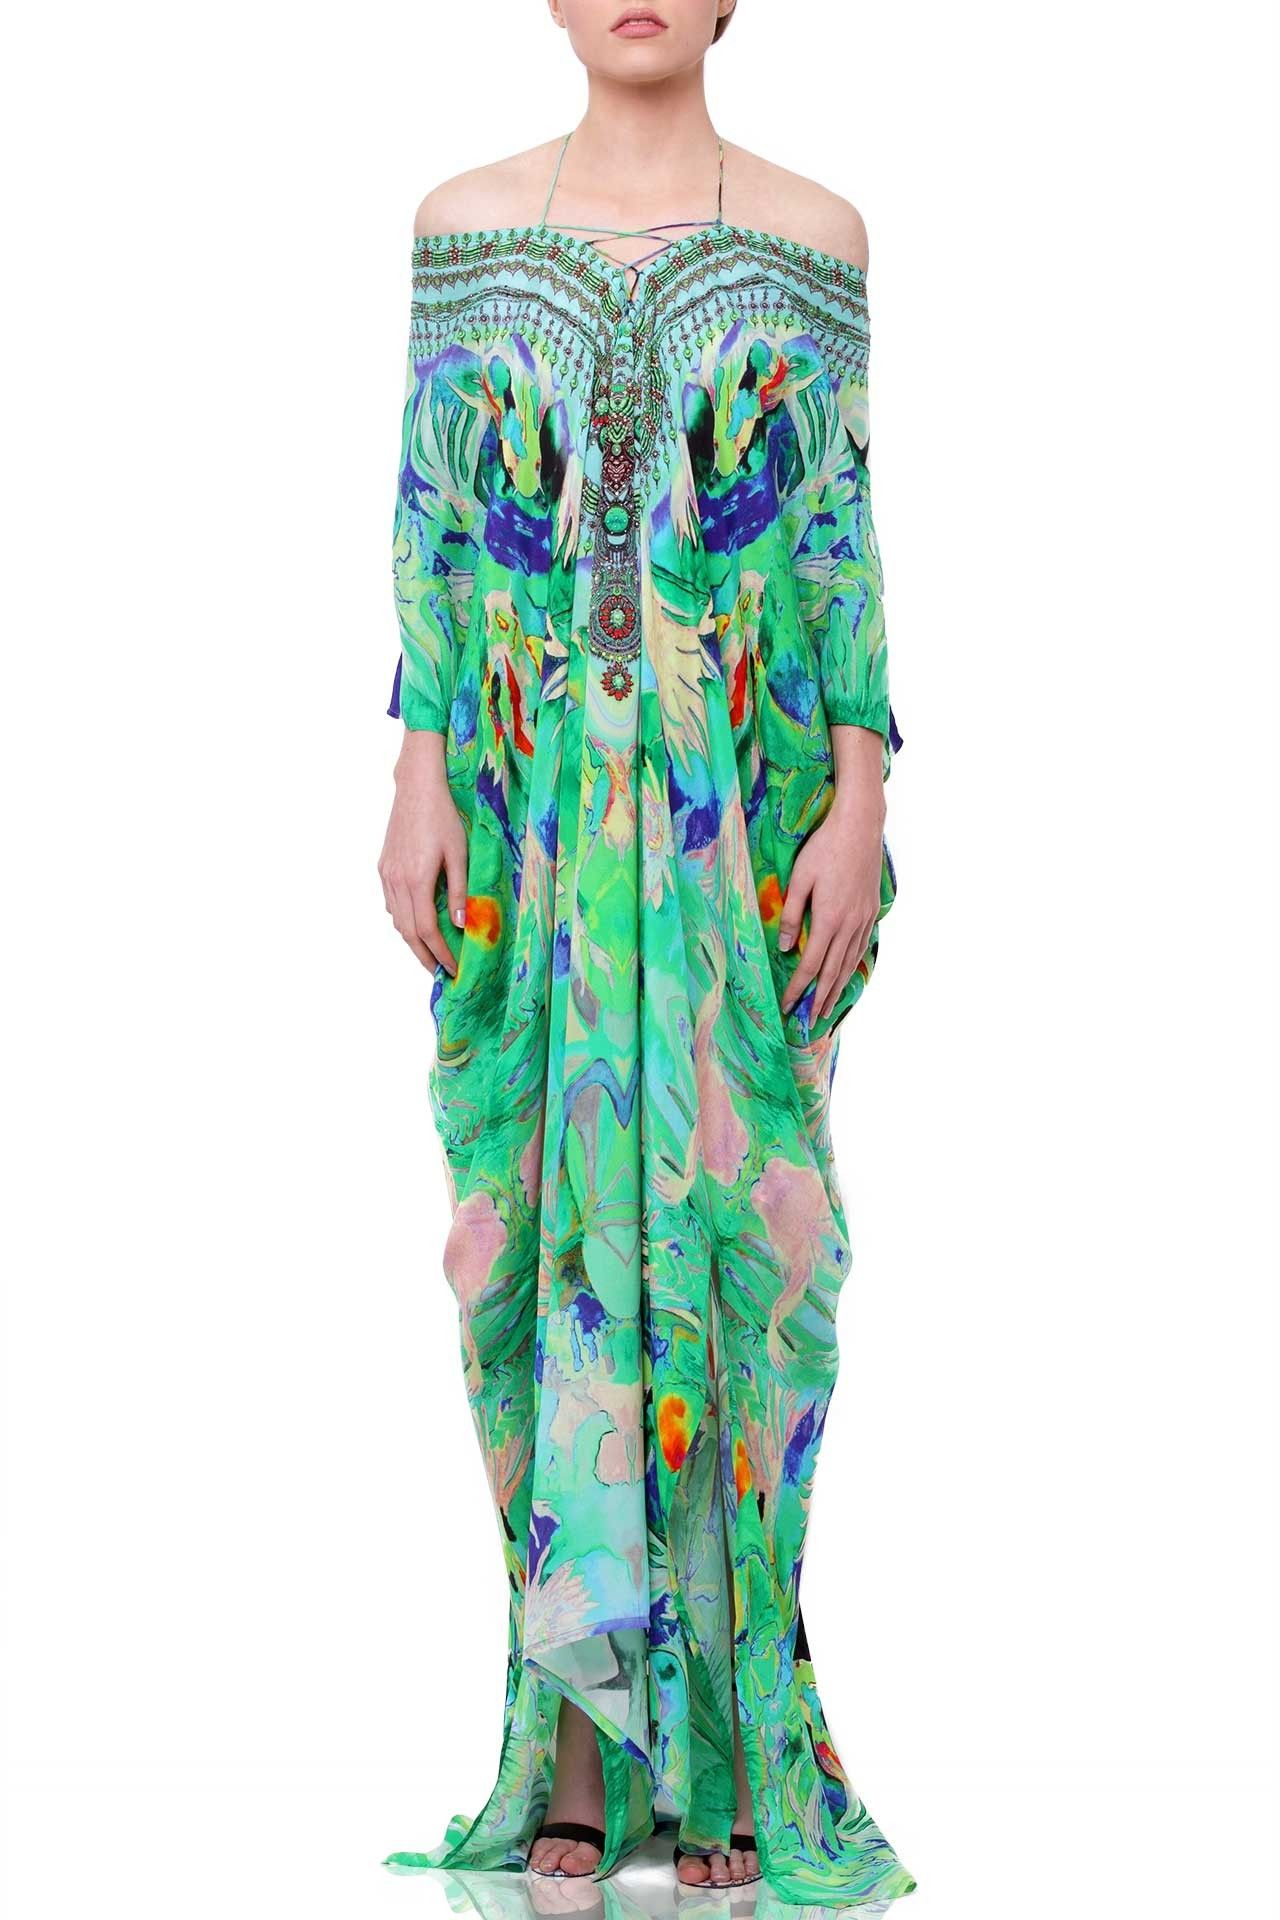 bd4066774102 Designer Kaftan Dress - Kaftan Maxi Dresses | Lace Up Kaftans - Shahida  Parides®